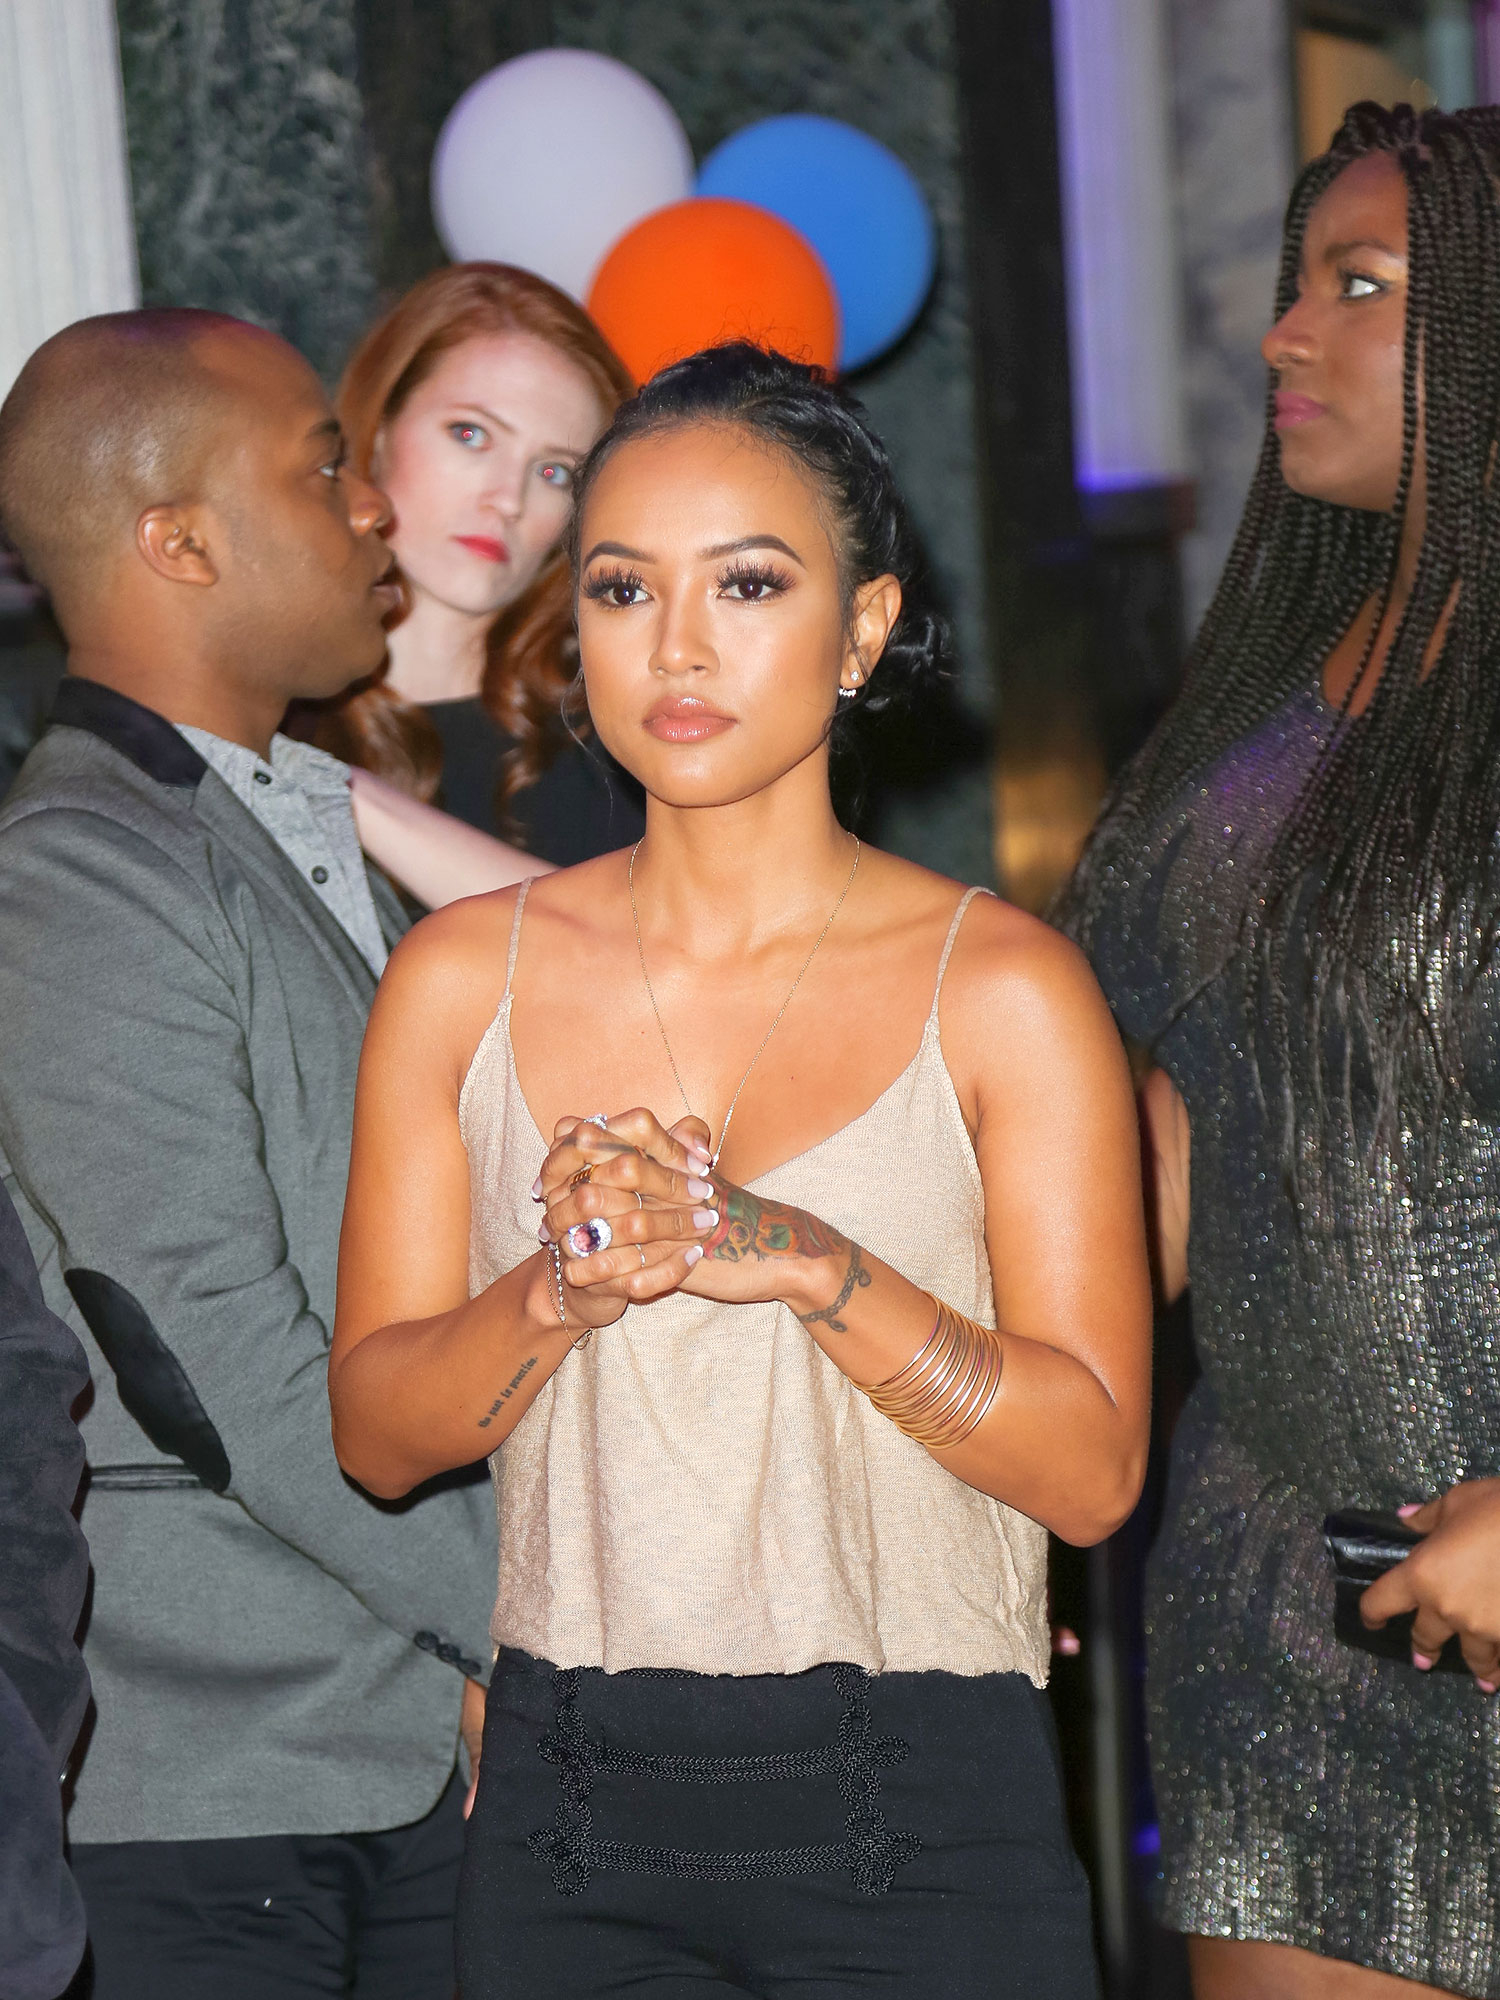 "Karrueche Tran - While cohosting BET's 106 & Park in 2014, Chris Brown's ex made a tasteless joke about Blue. ""I really did wake up like this because my parents never comb my hair,"" Tran quipped."